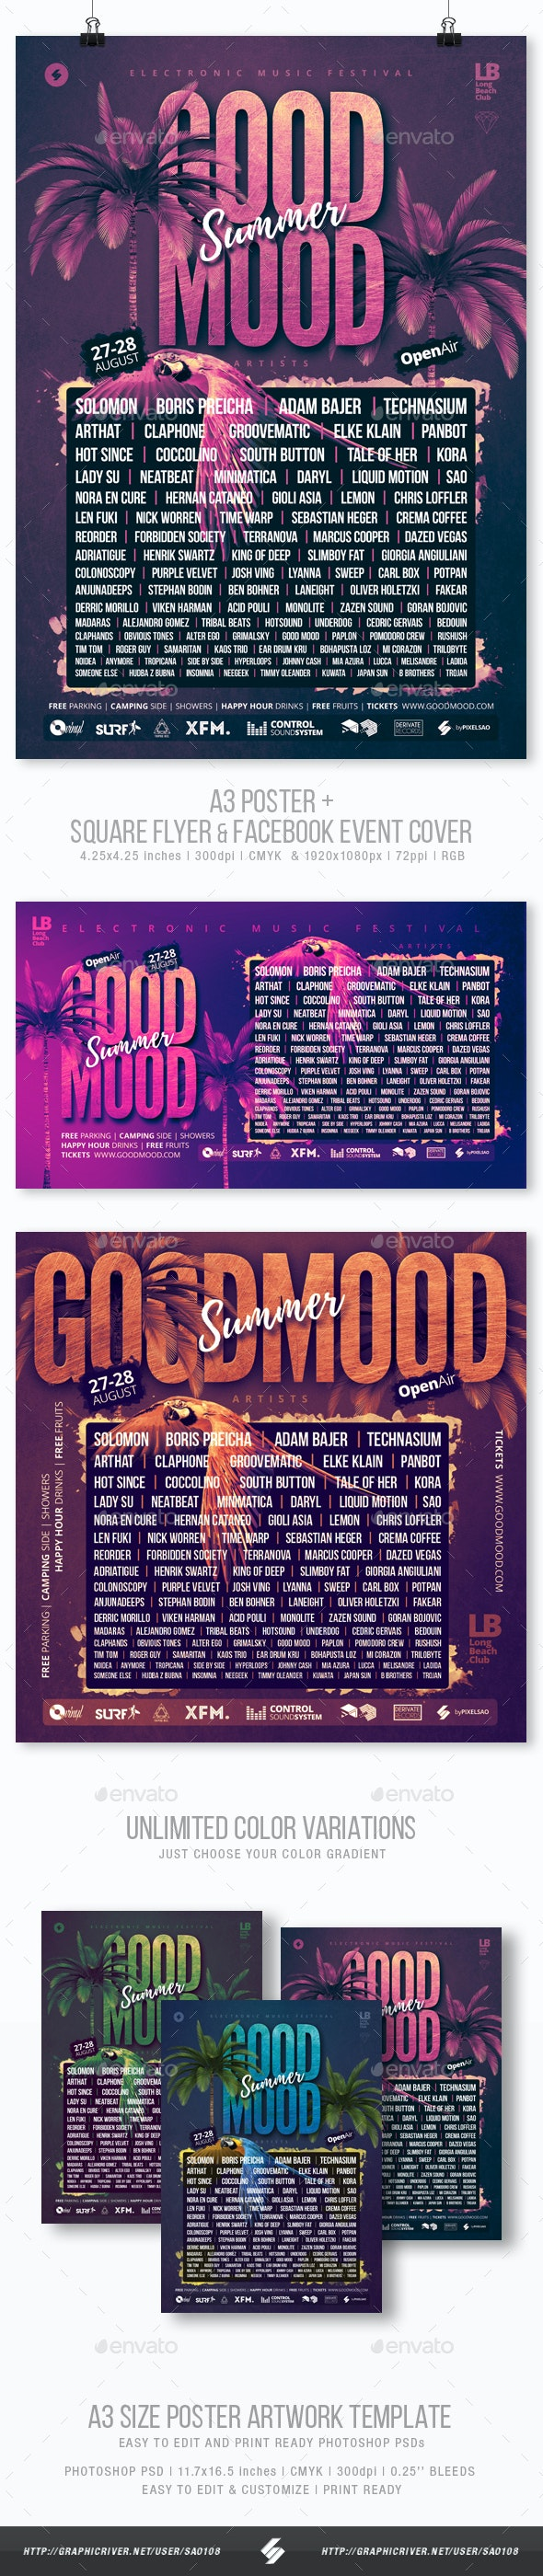 Good Mood Festival - Summer Party Flyer / Poster Template A3 - Clubs & Parties Events